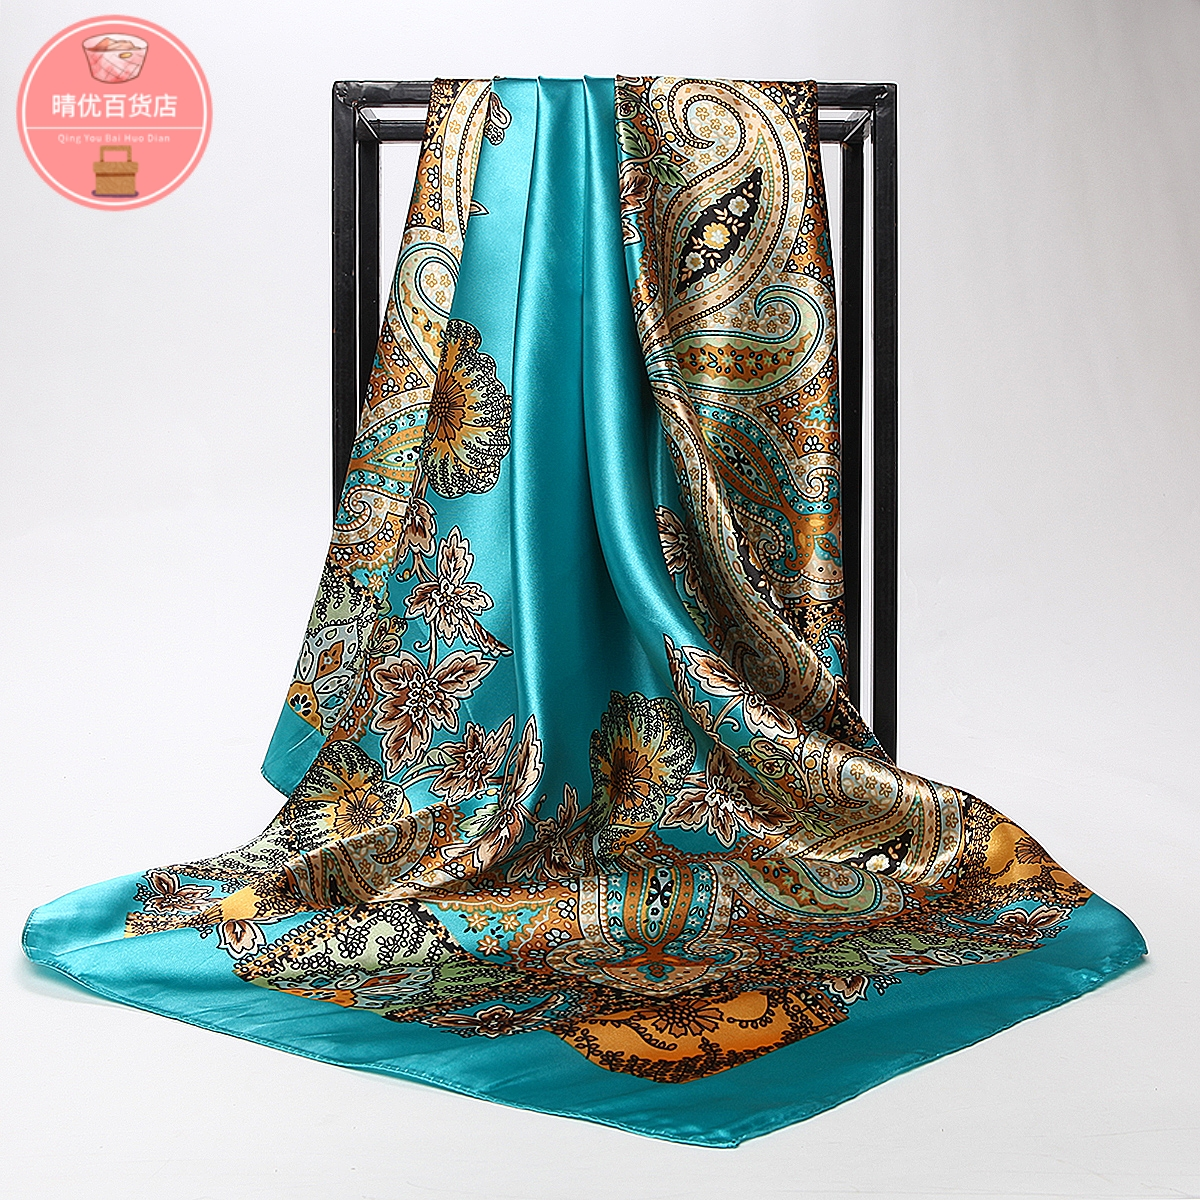 Direct sale of 90 square scarves of Hangzhou silk by overseas gift giving manufacturers